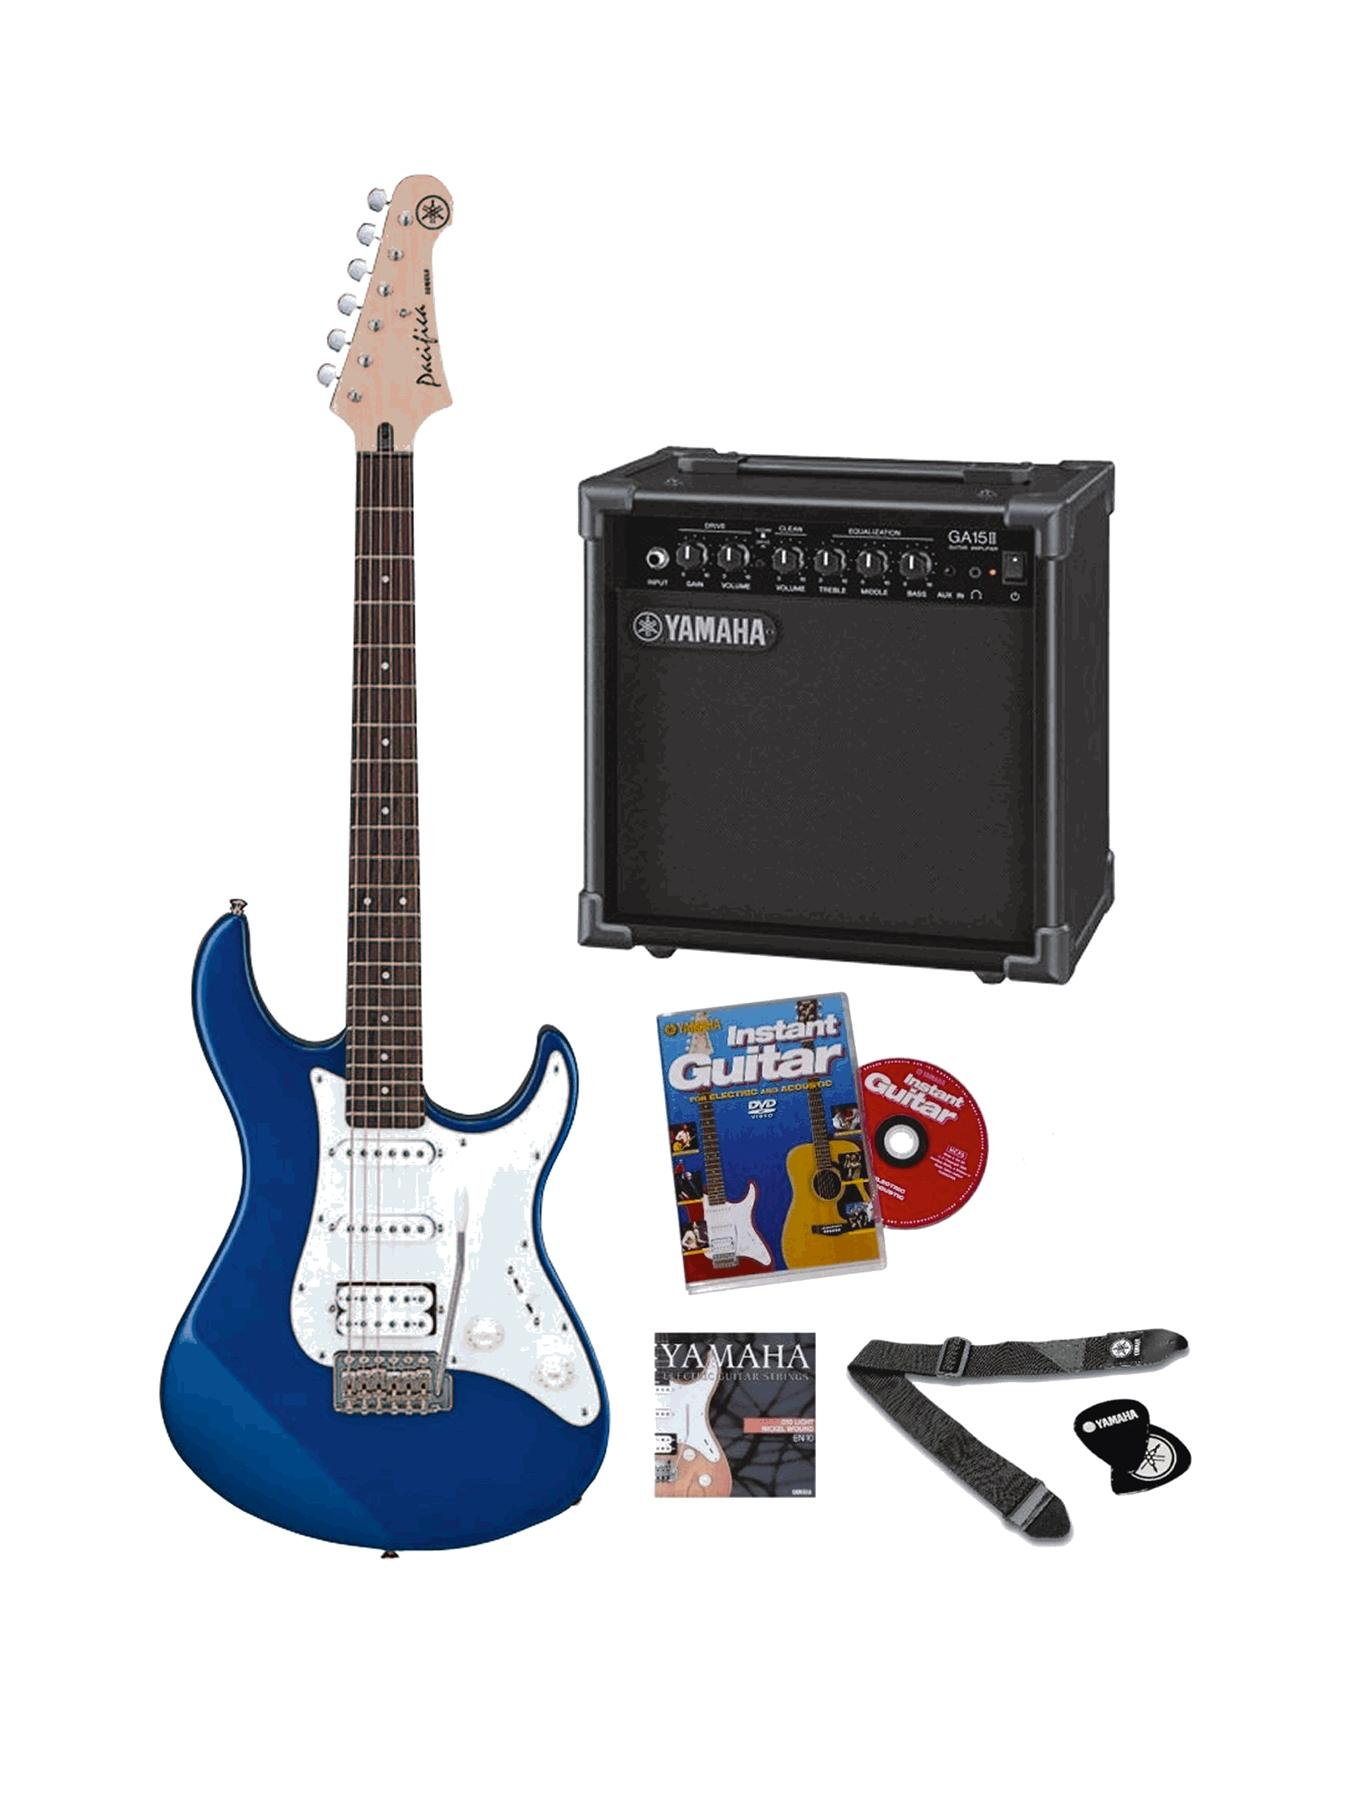 Yamaha Pacifica Electric Guitar Pack Musical Instrument - Blue